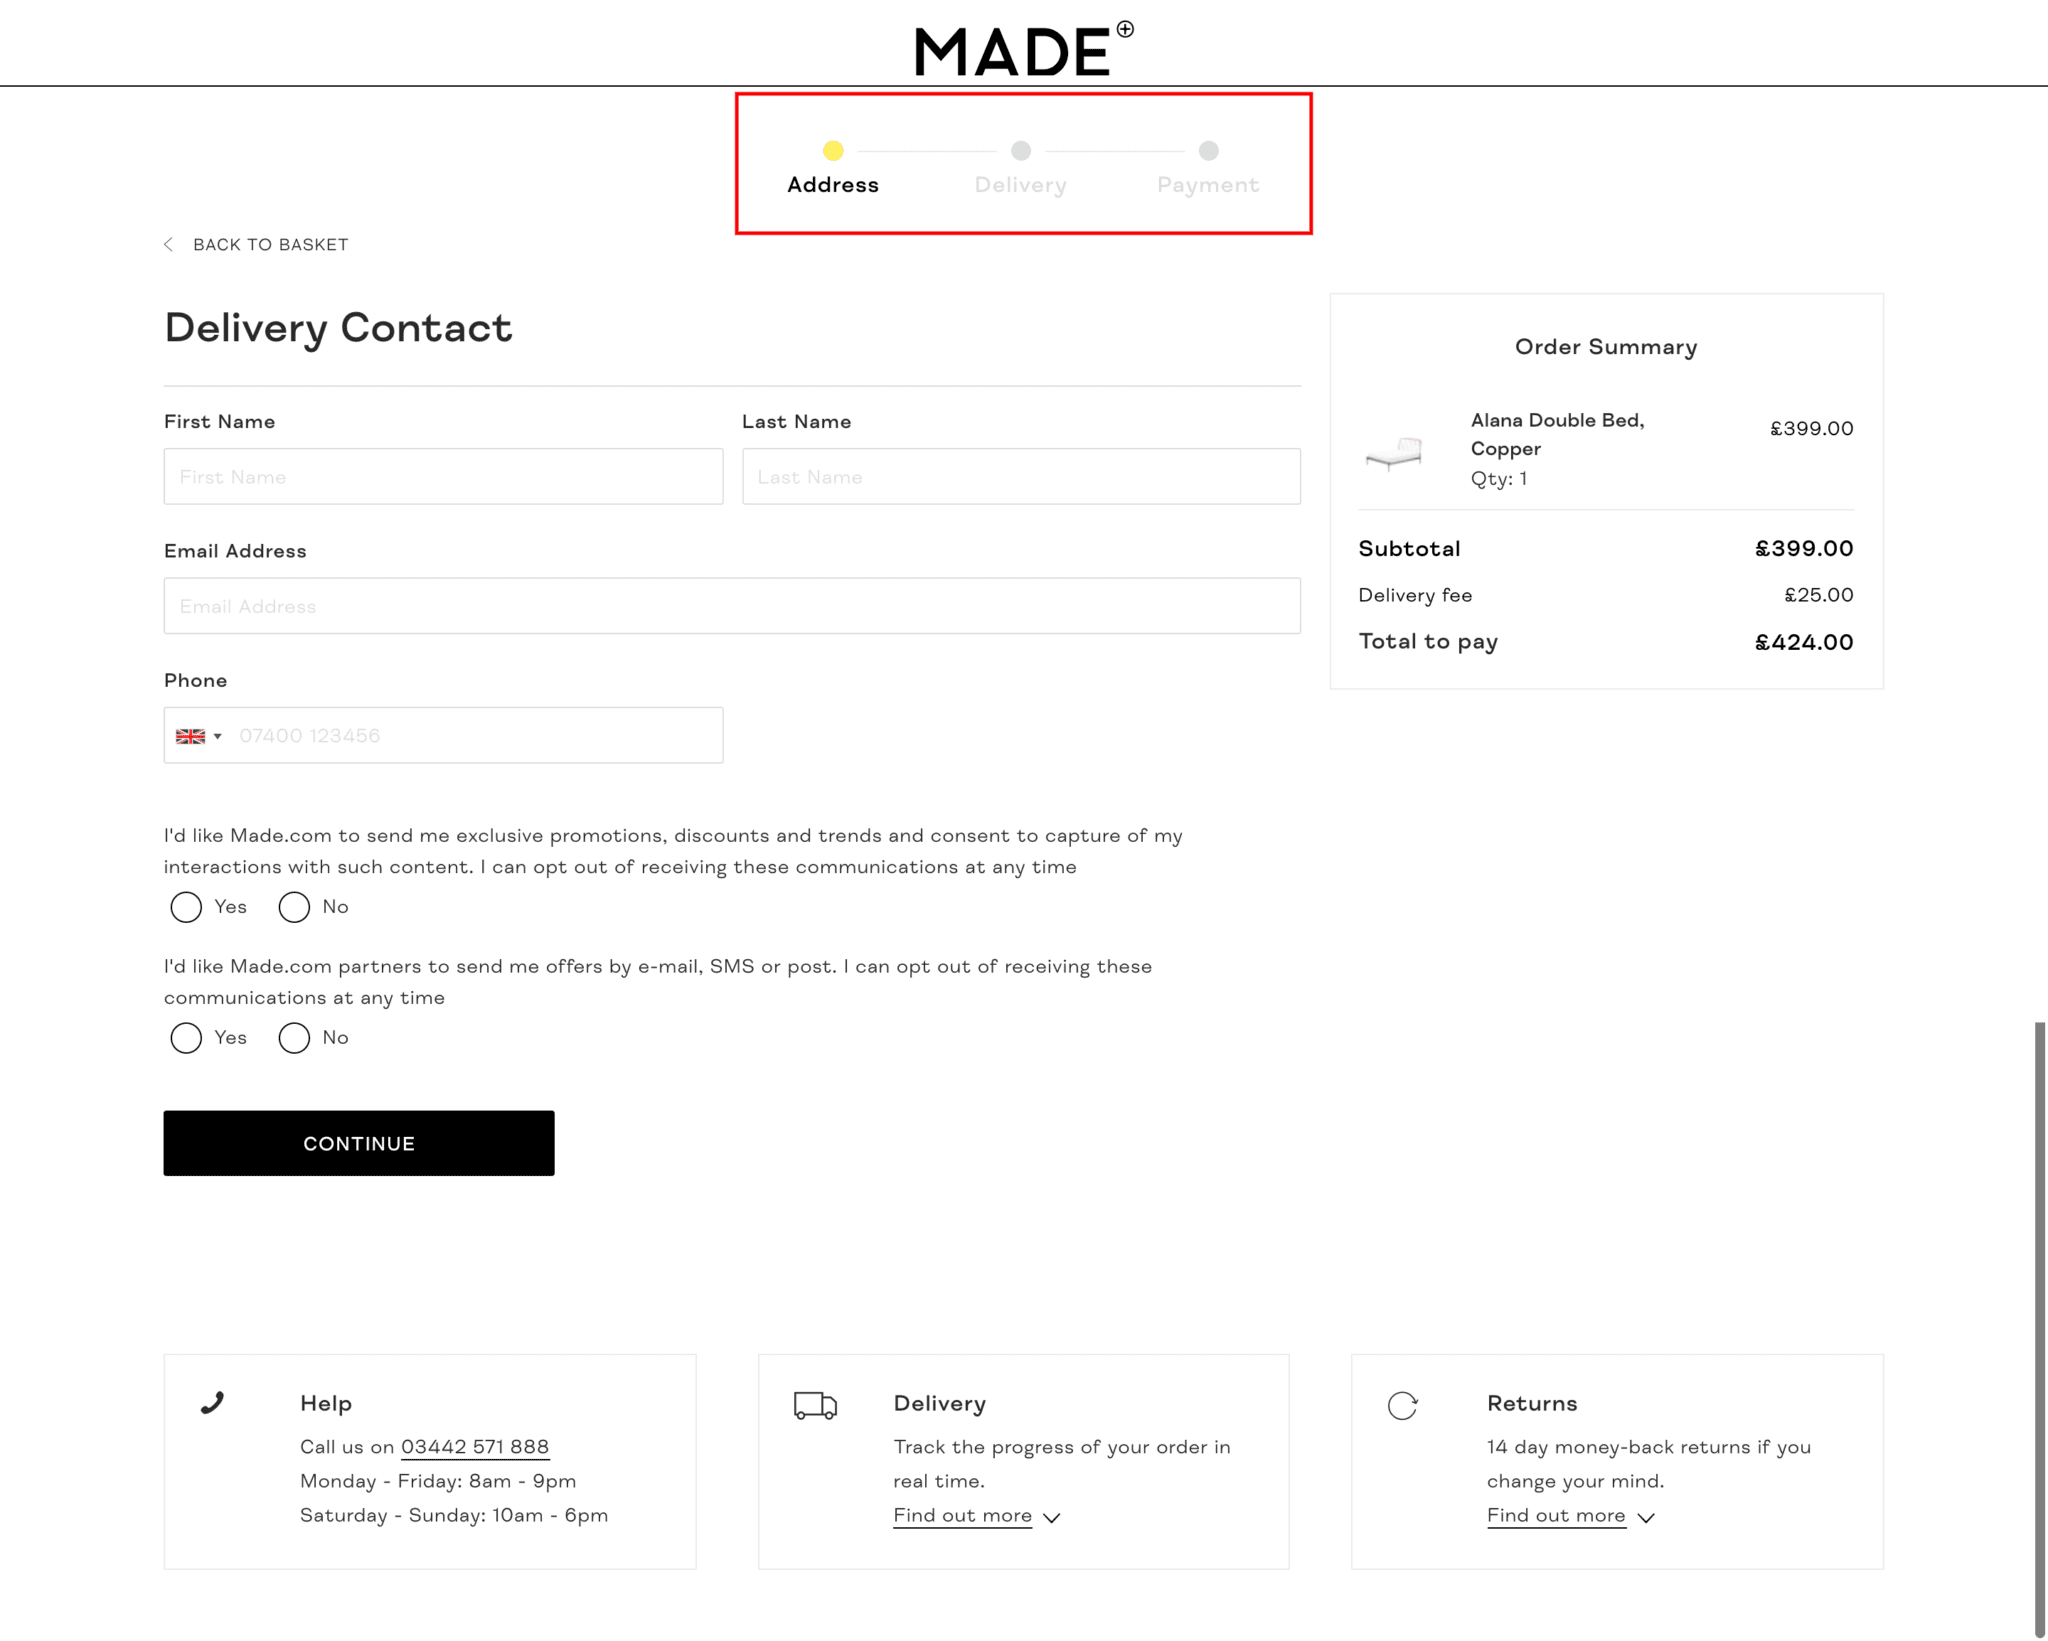 Made checkout with progress indicators highlighted